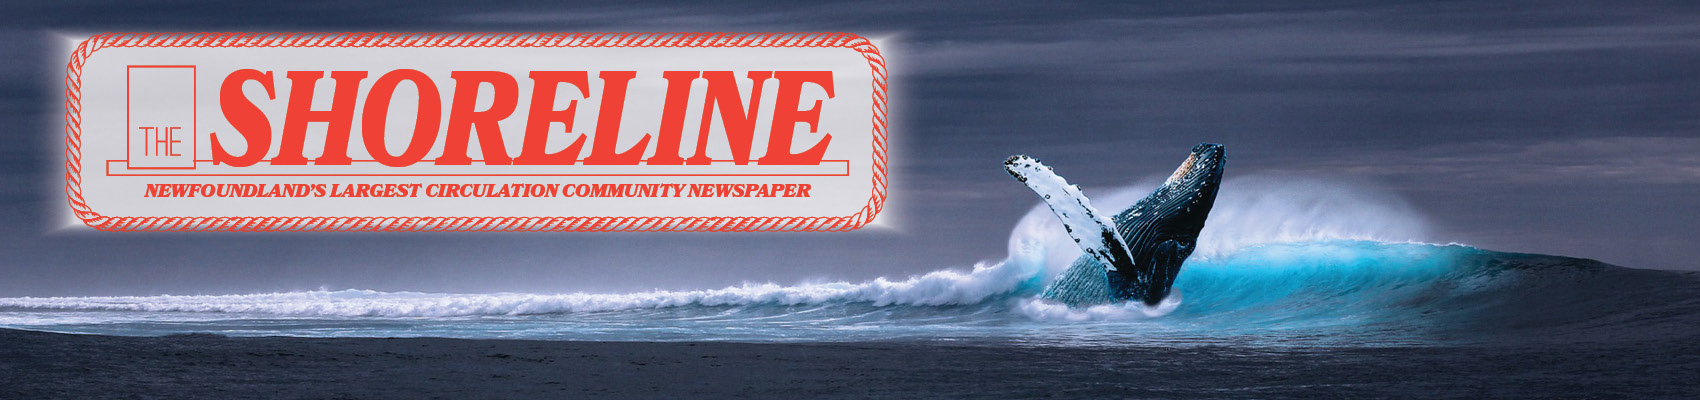 The Shoreline News